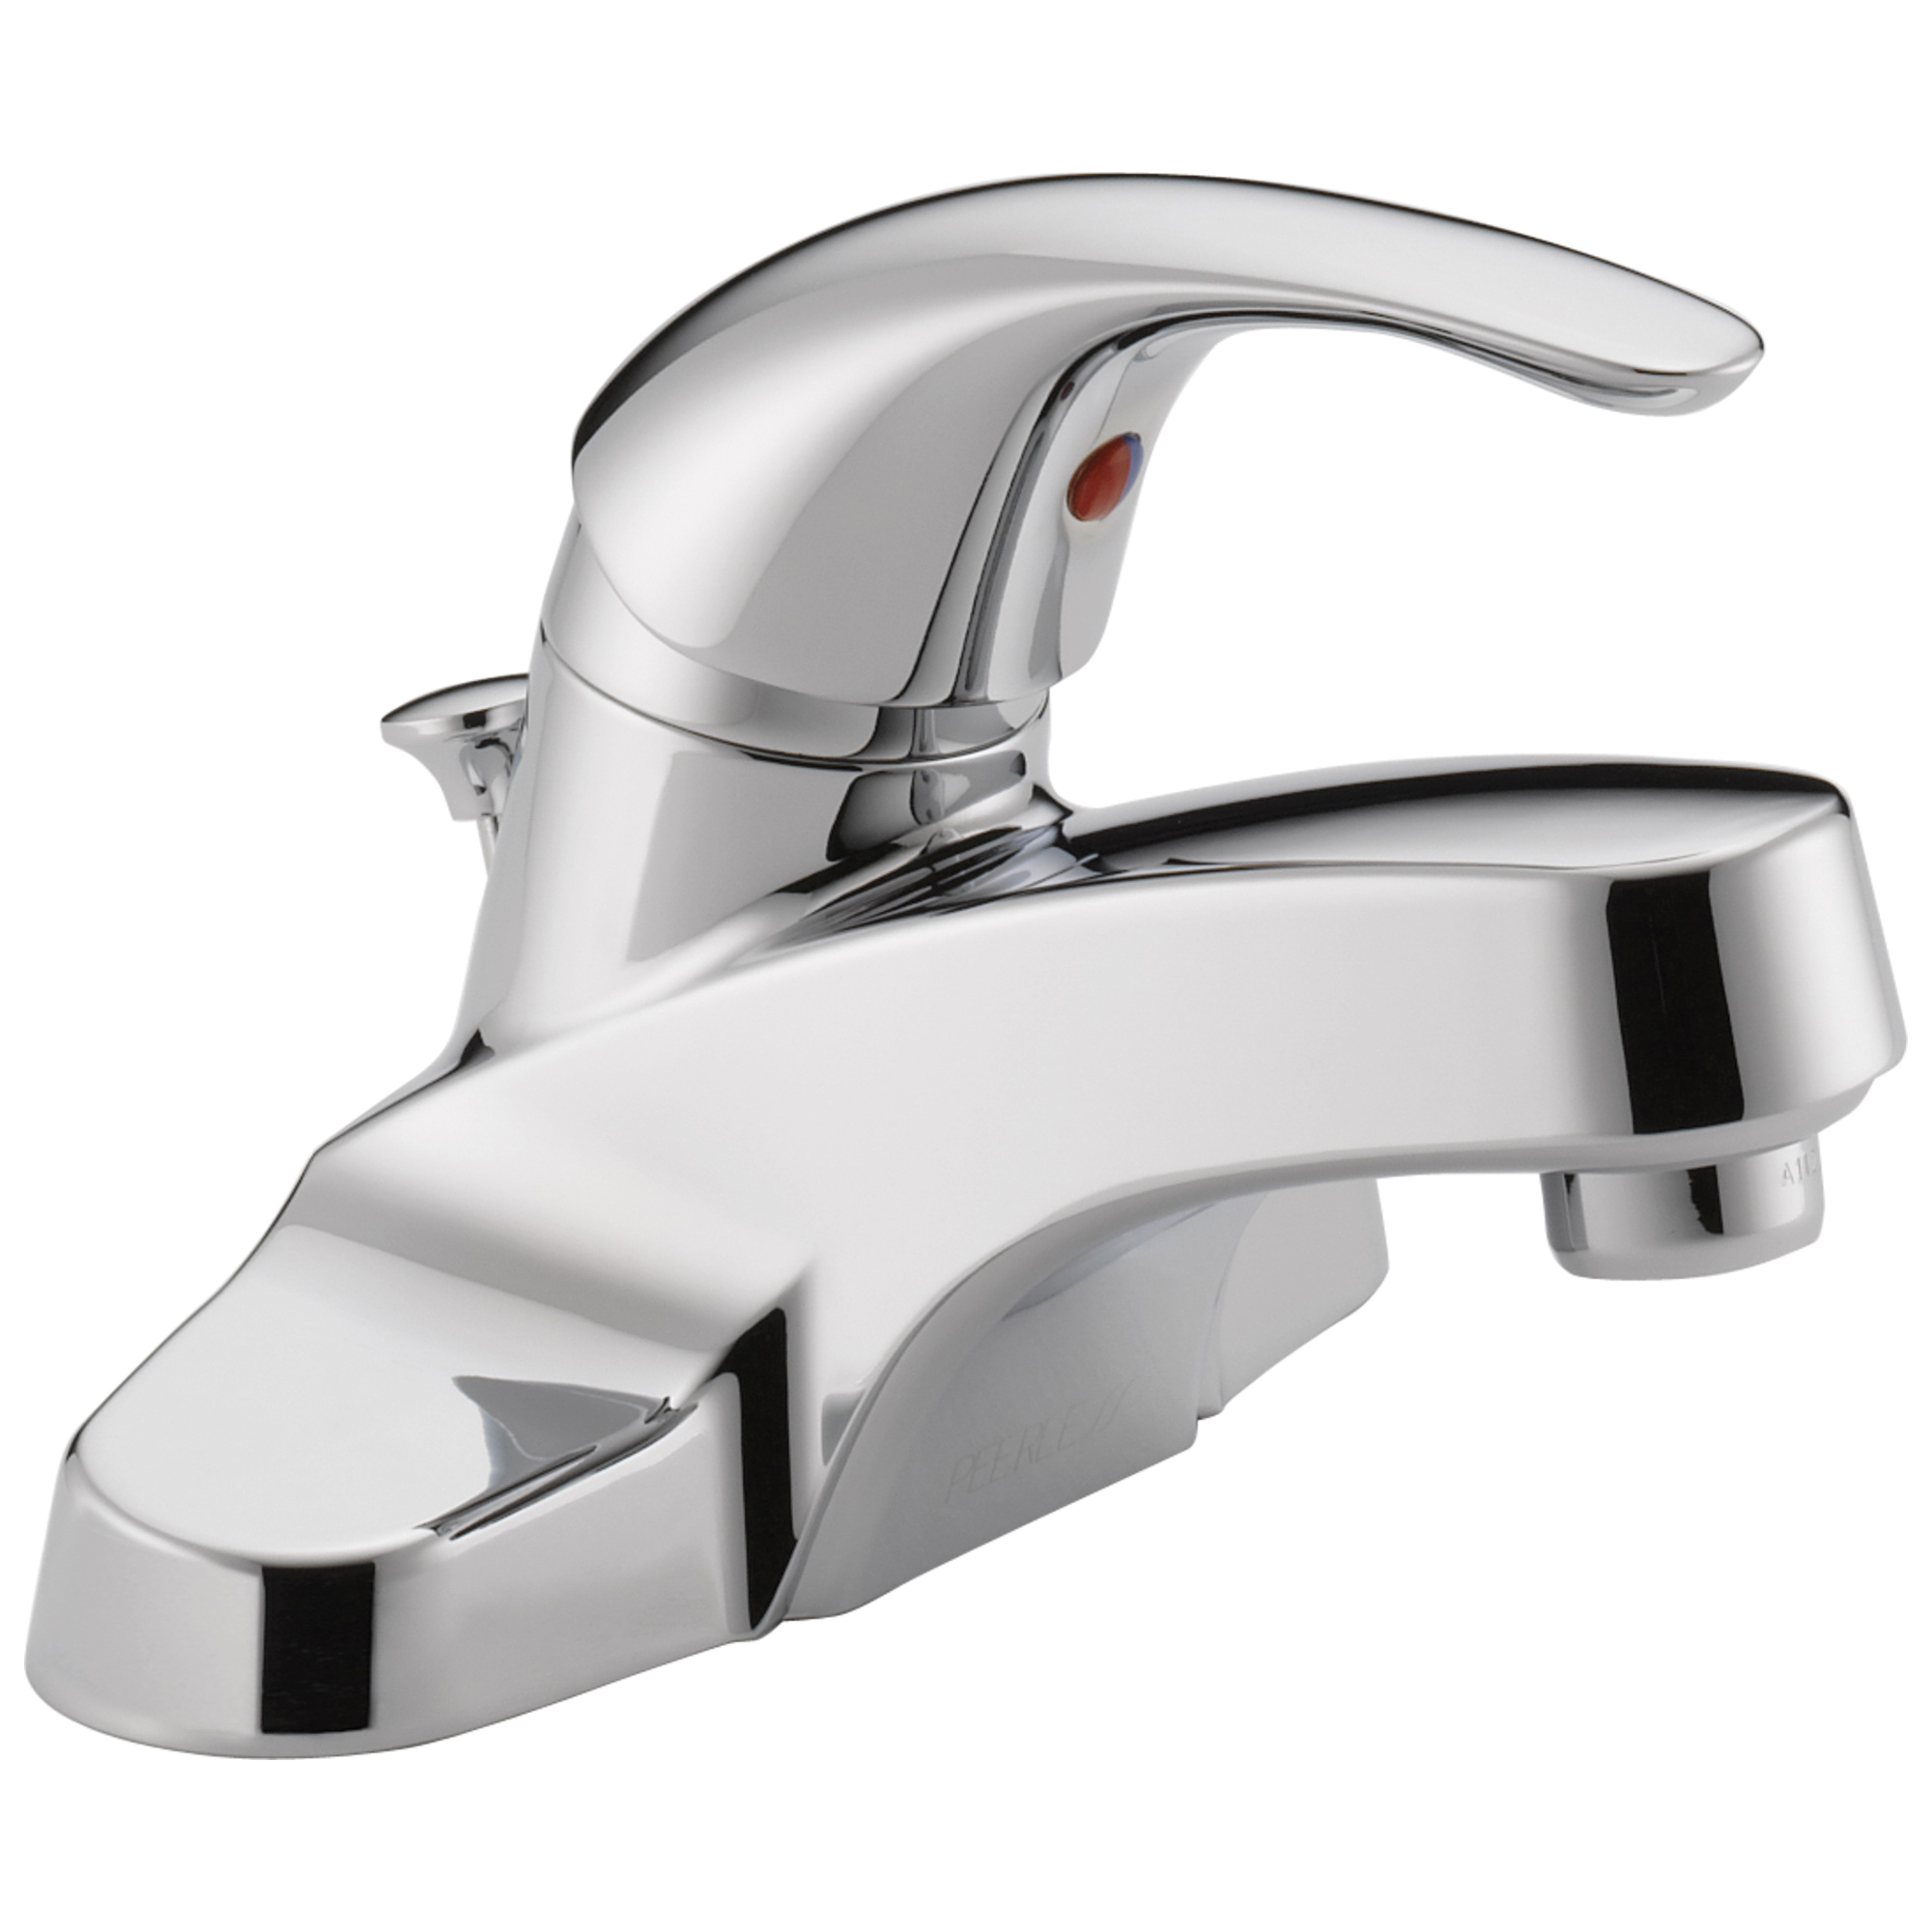 Peerless® P188620LF Centerset Lavatory Faucet, Chrome Plated, 1 Handles, Pop-Up Drain, 1.5 gpm